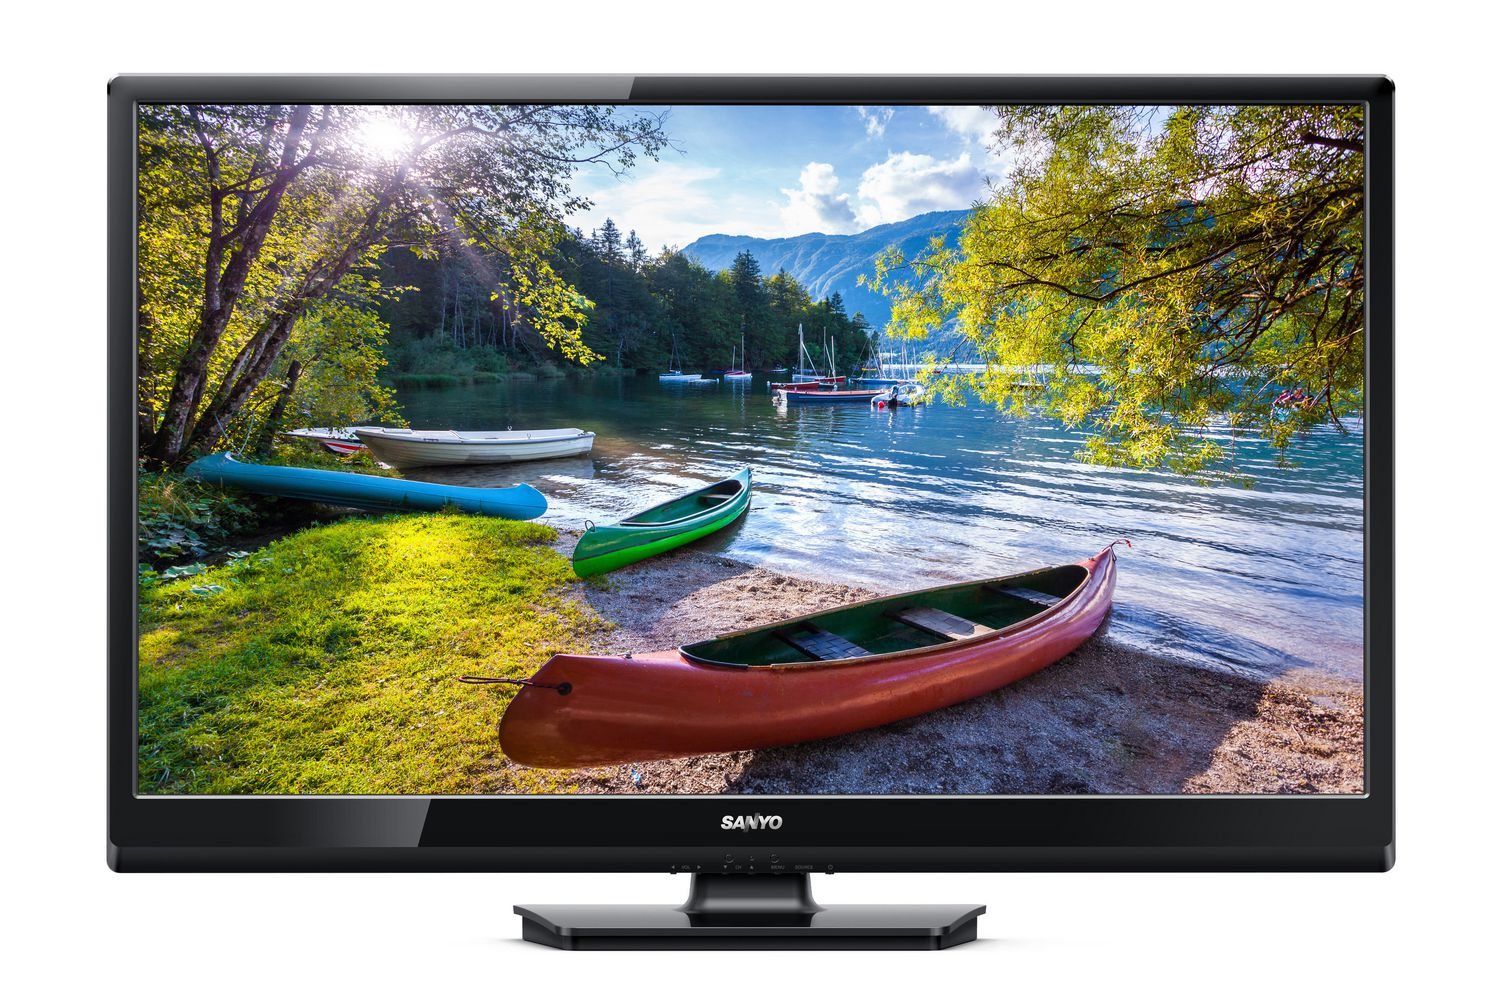 Best TVs - 30 to 39 inches - Alternate pick - Sanyo 32 inch TV with stand showing canoes beached on shore of lake on display screen